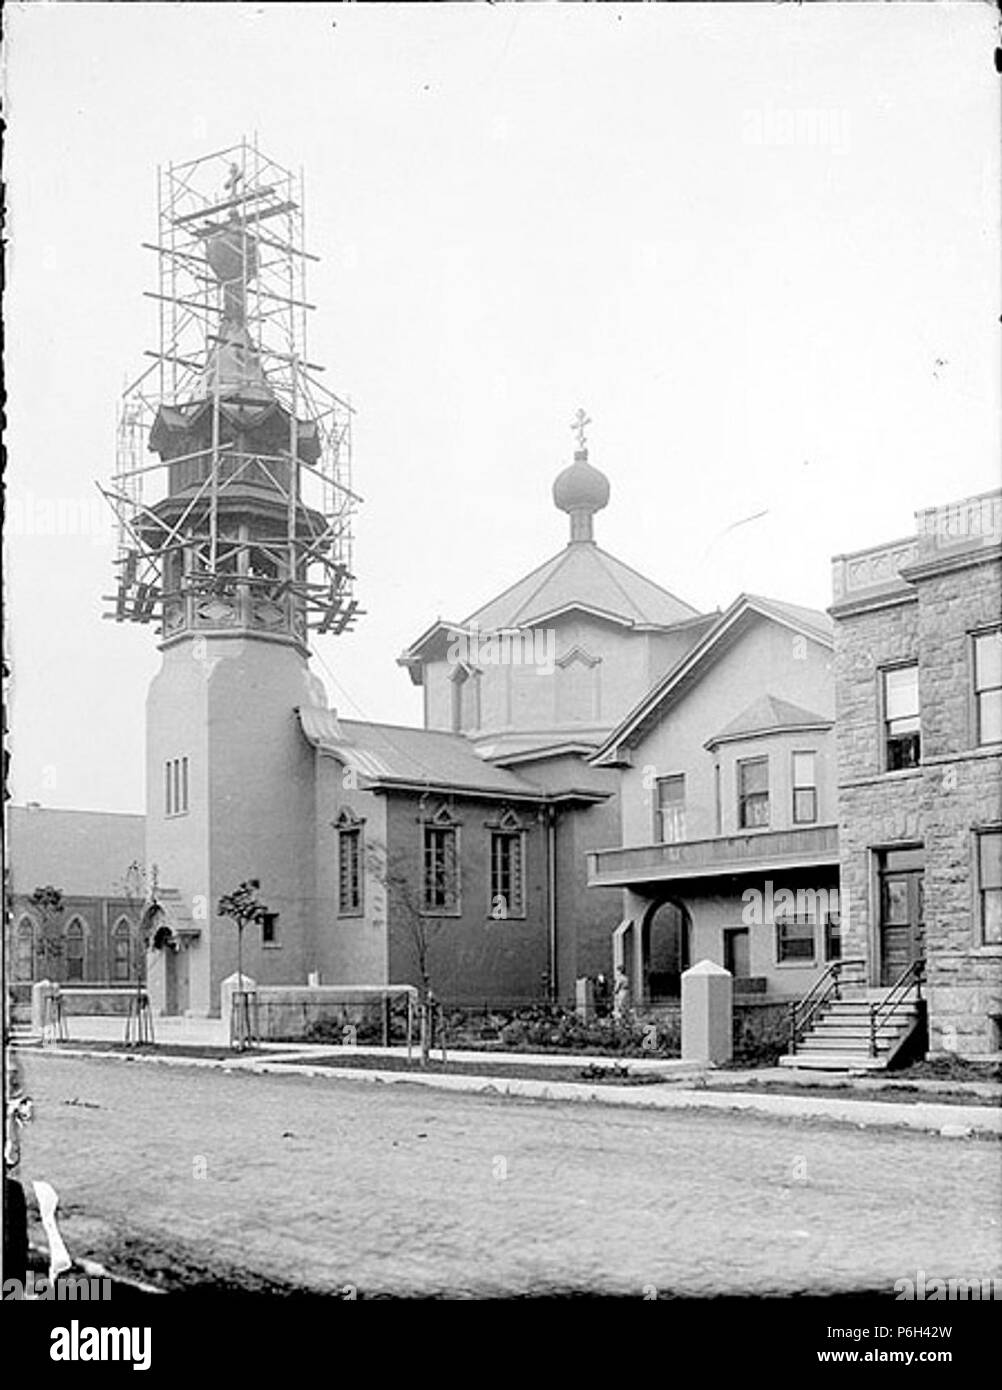 1905 Chicago Holy Trinity bell tower under construction. - Stock Image